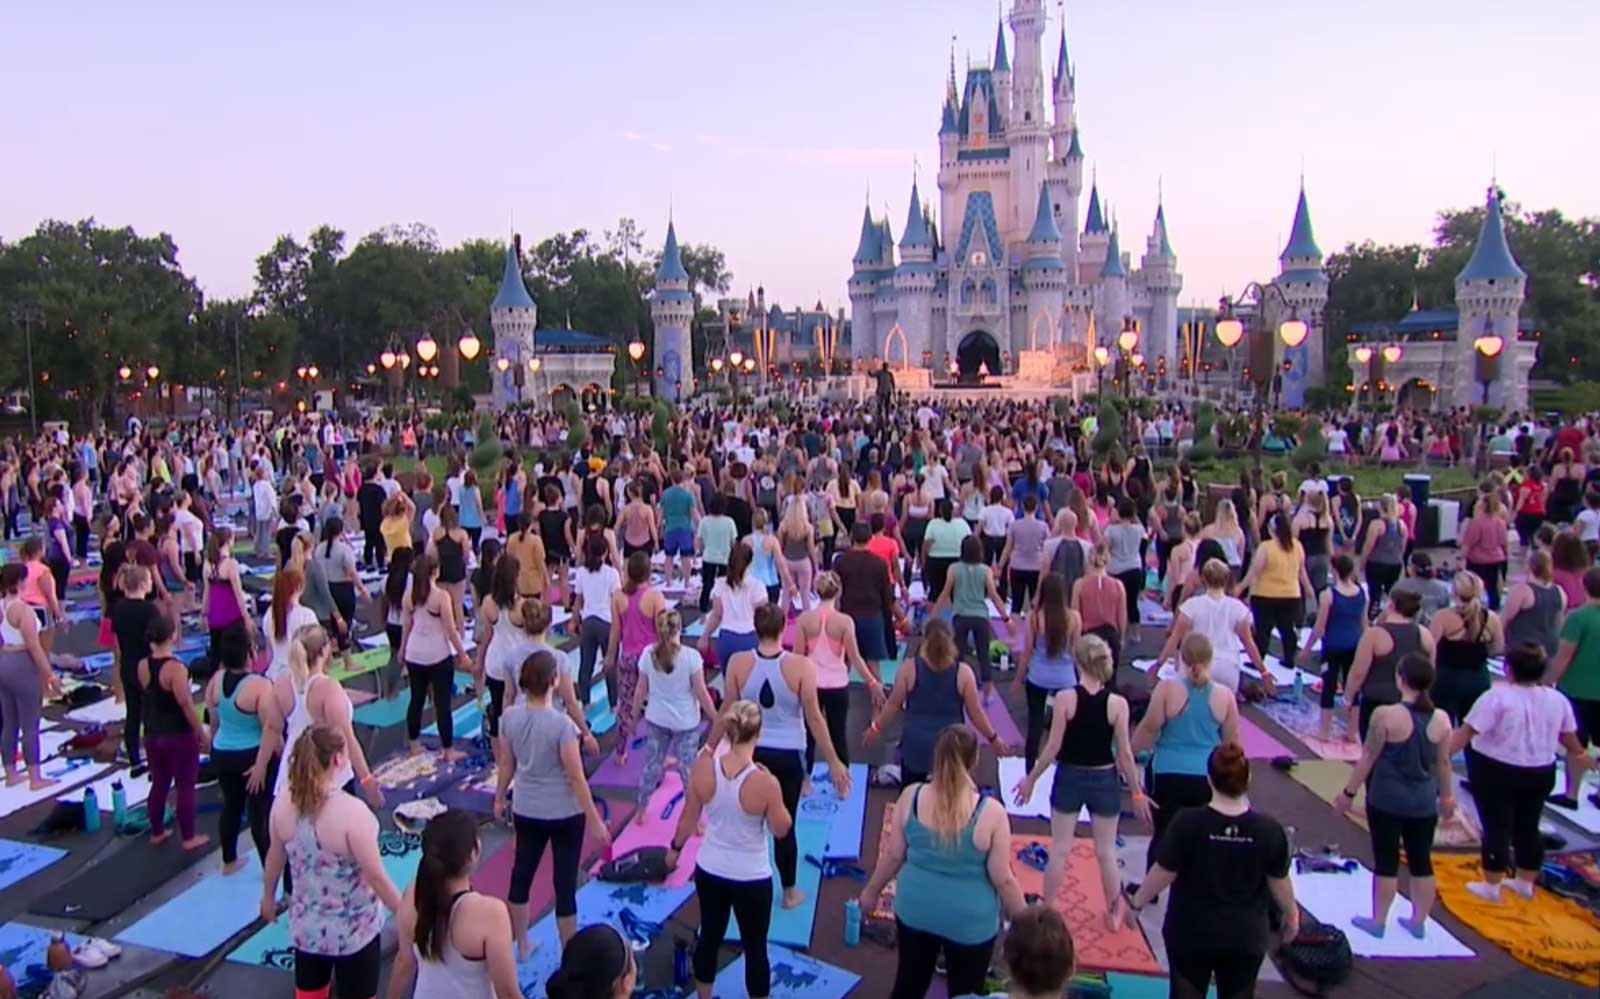 Disney Parks Celebrate International Yoga Day With Sunrise Yoga for Cast Members